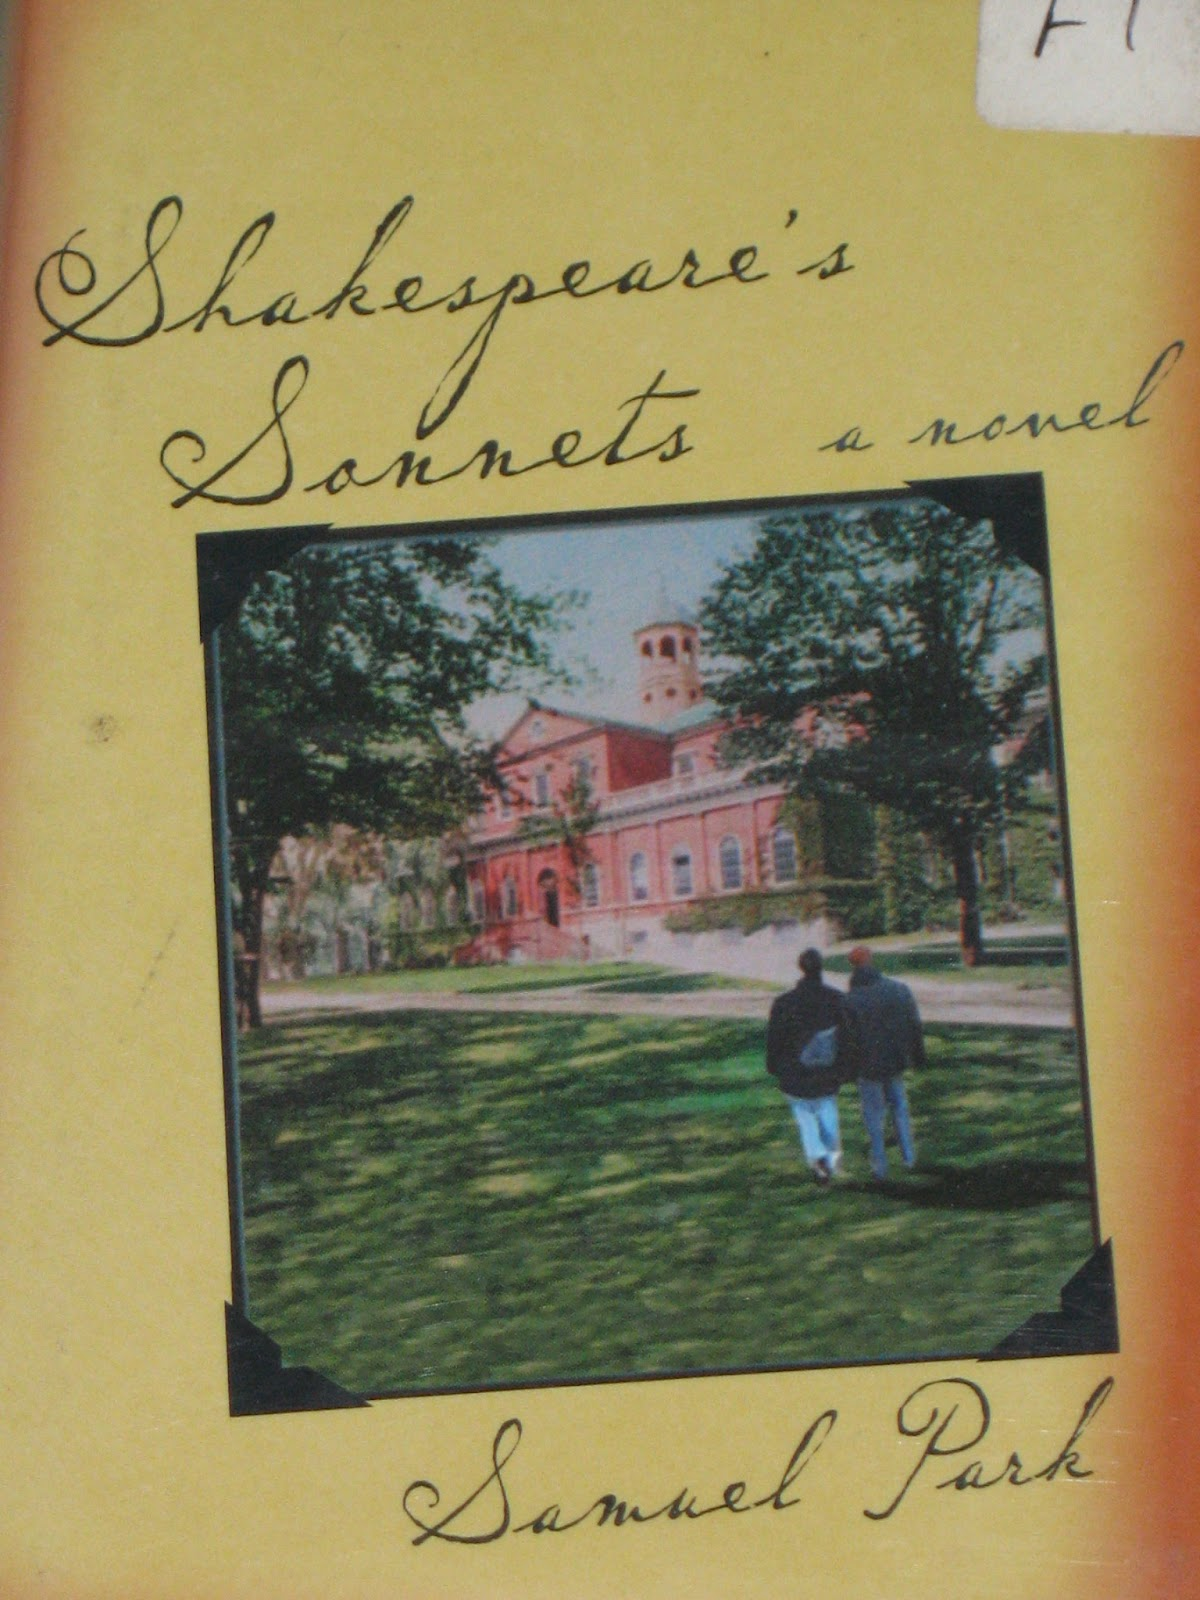 mostly shakespeare but also some occasional nonsense shakespeare s sonnets by samuel park this novel takes place at harvard university in the late 1940s and tells of two male students adam and jean who